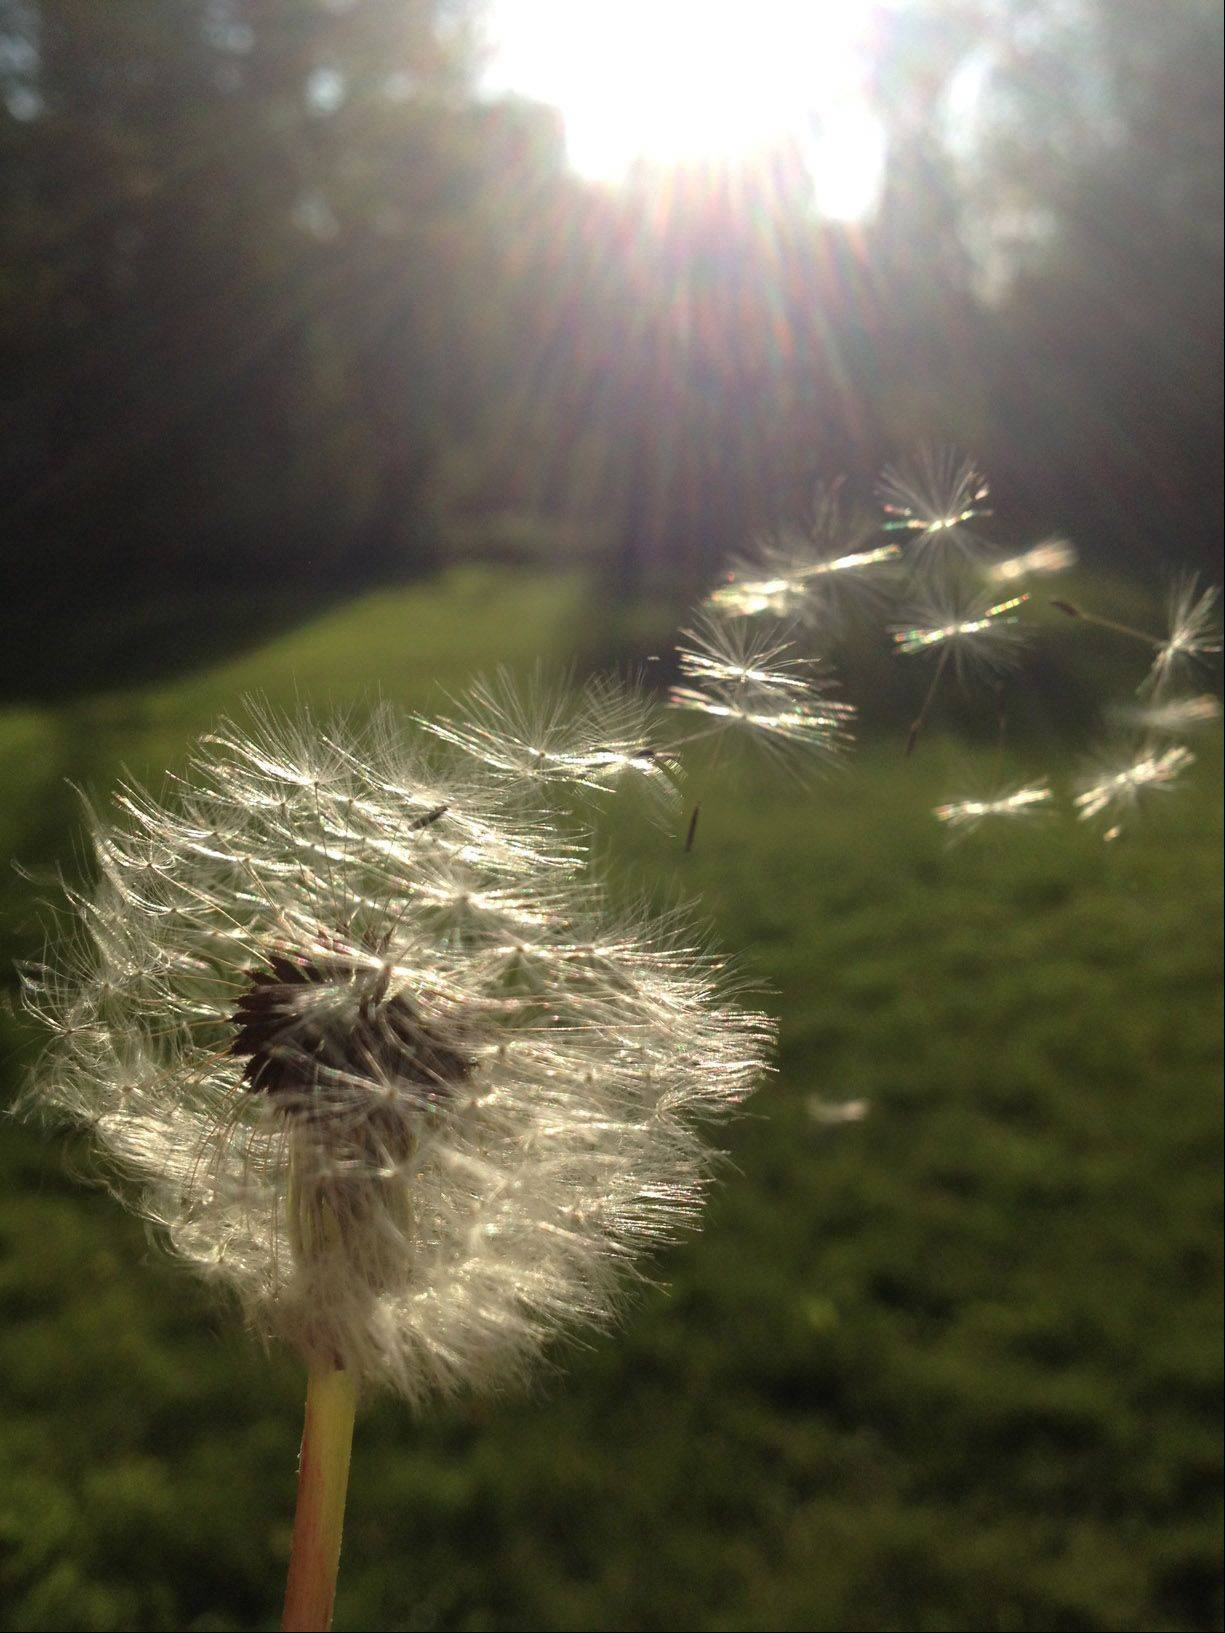 A dandelion blows in the wind near Cook Memorial Park in Libertyville.